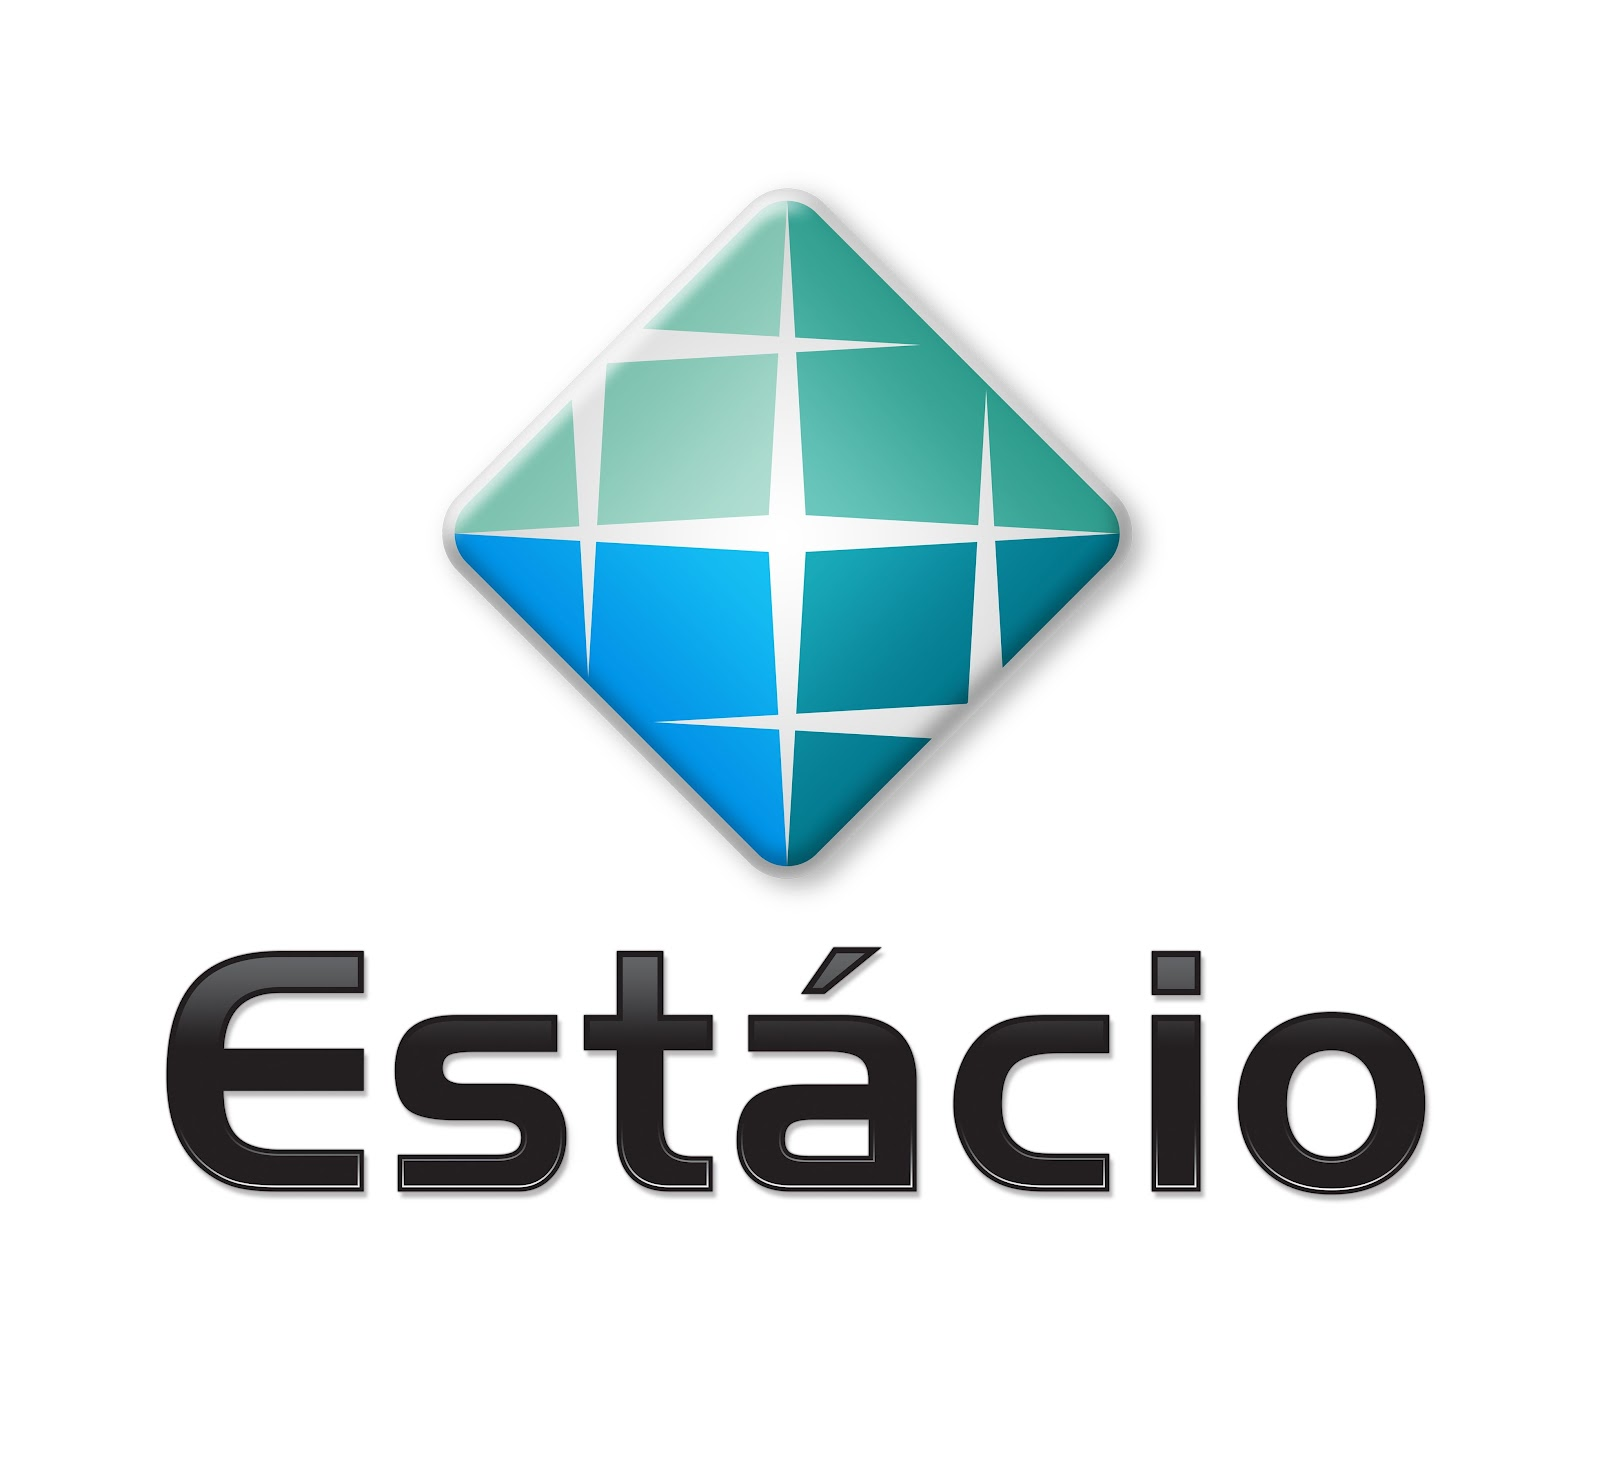 estacio-logo-faculdade-6